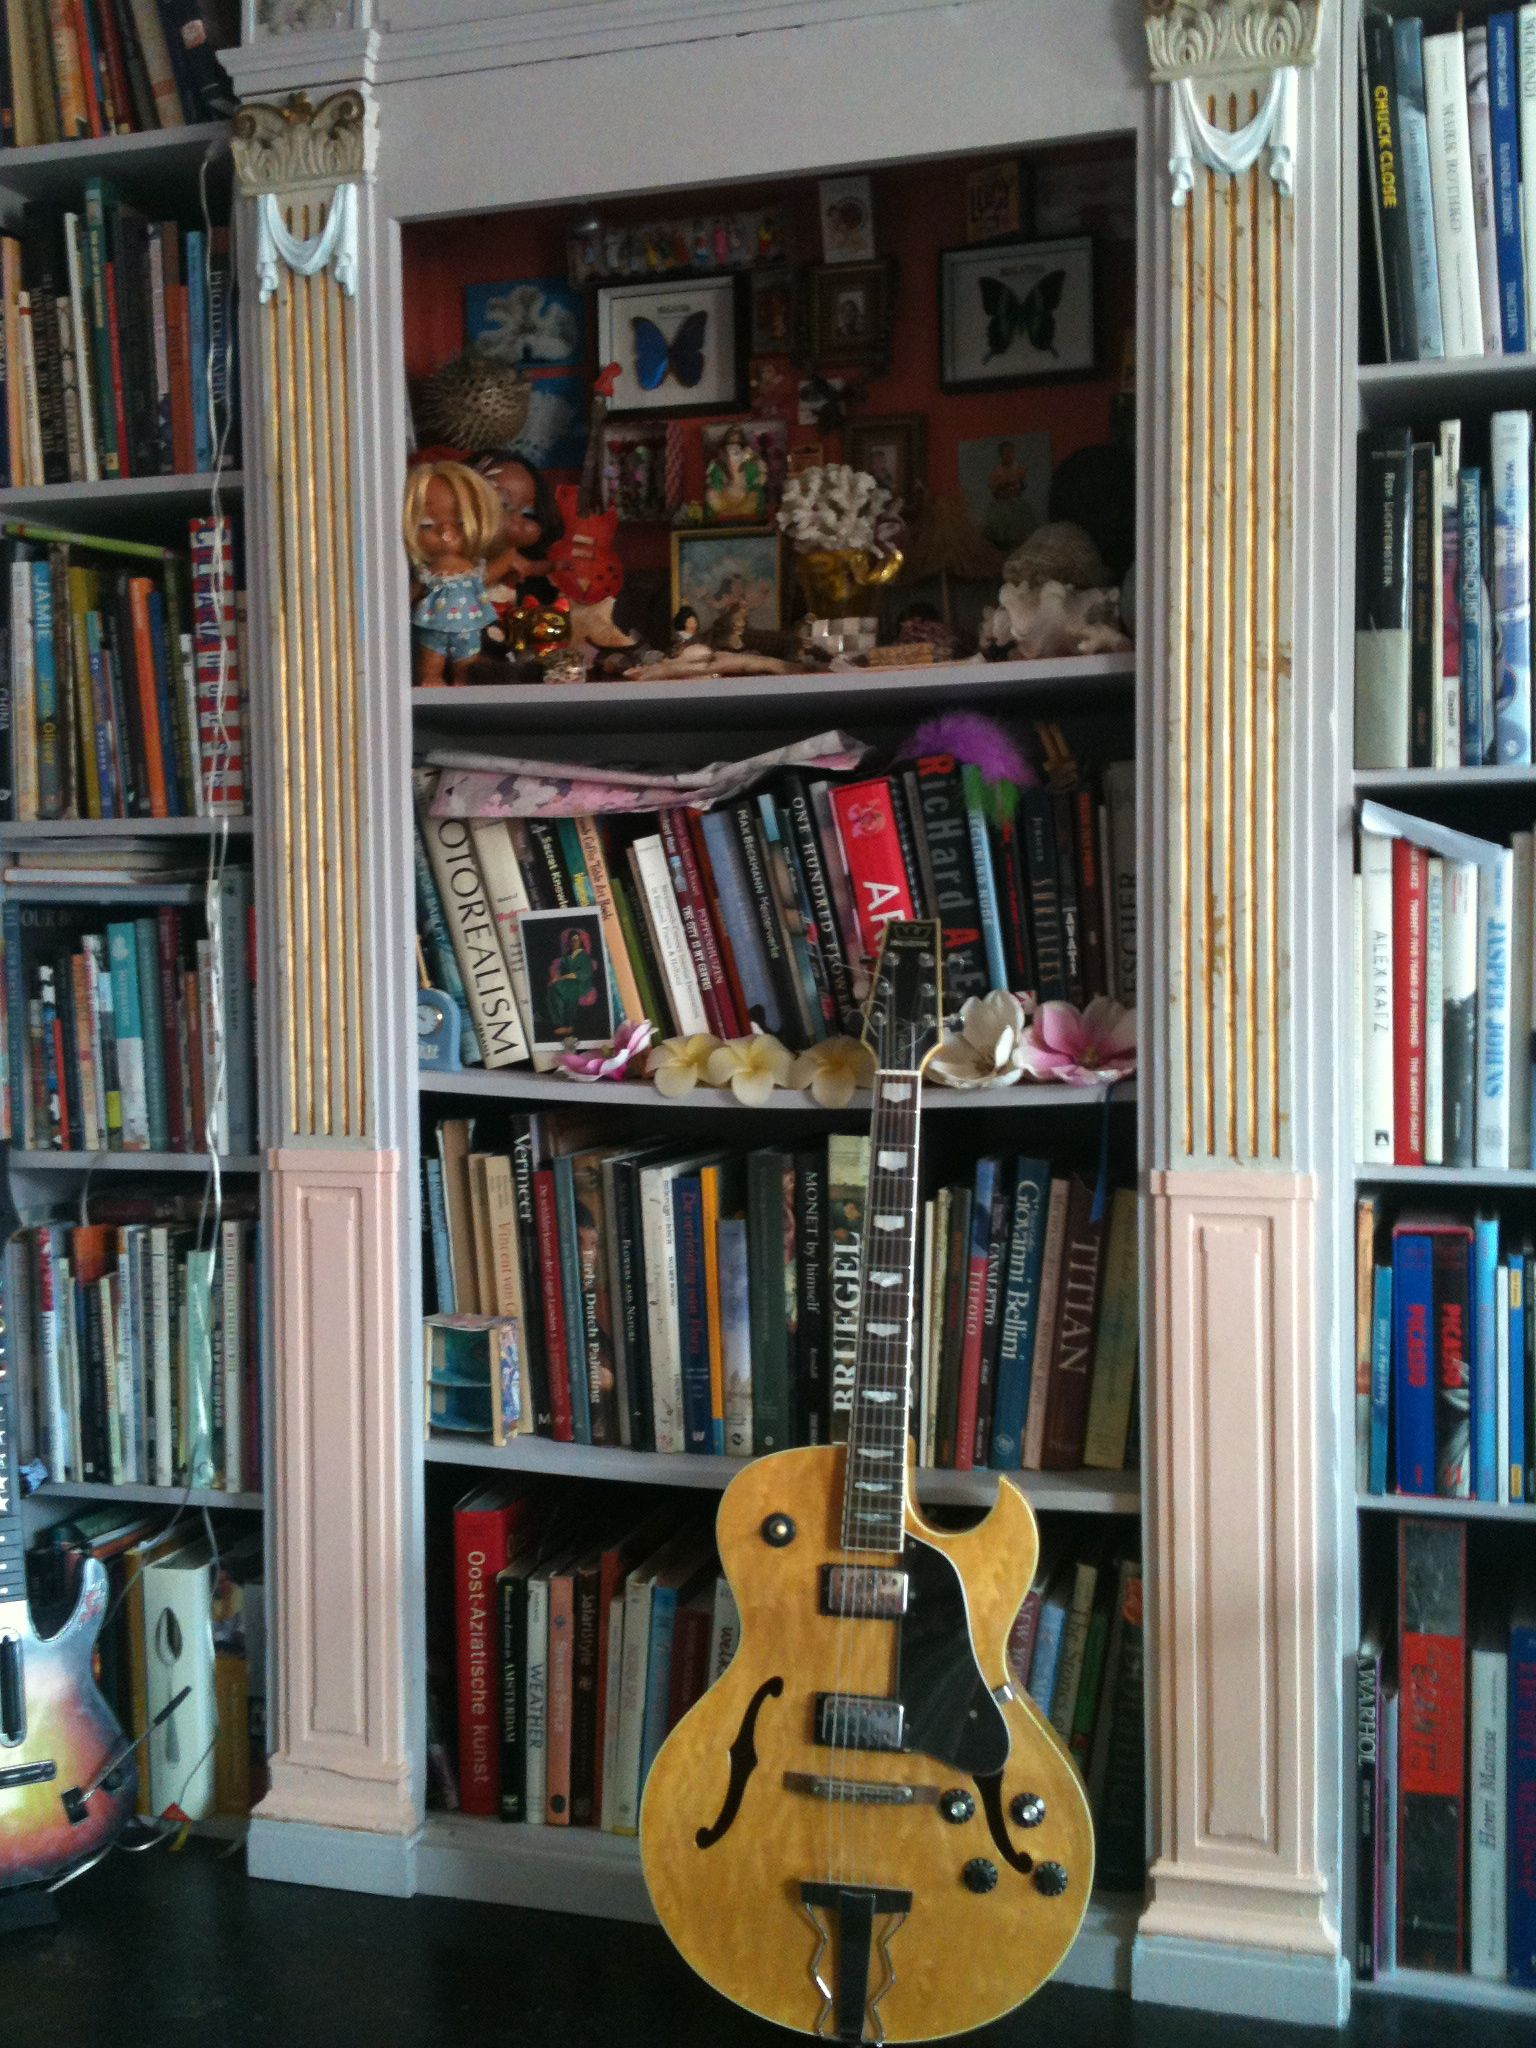 books and a jazz guitar